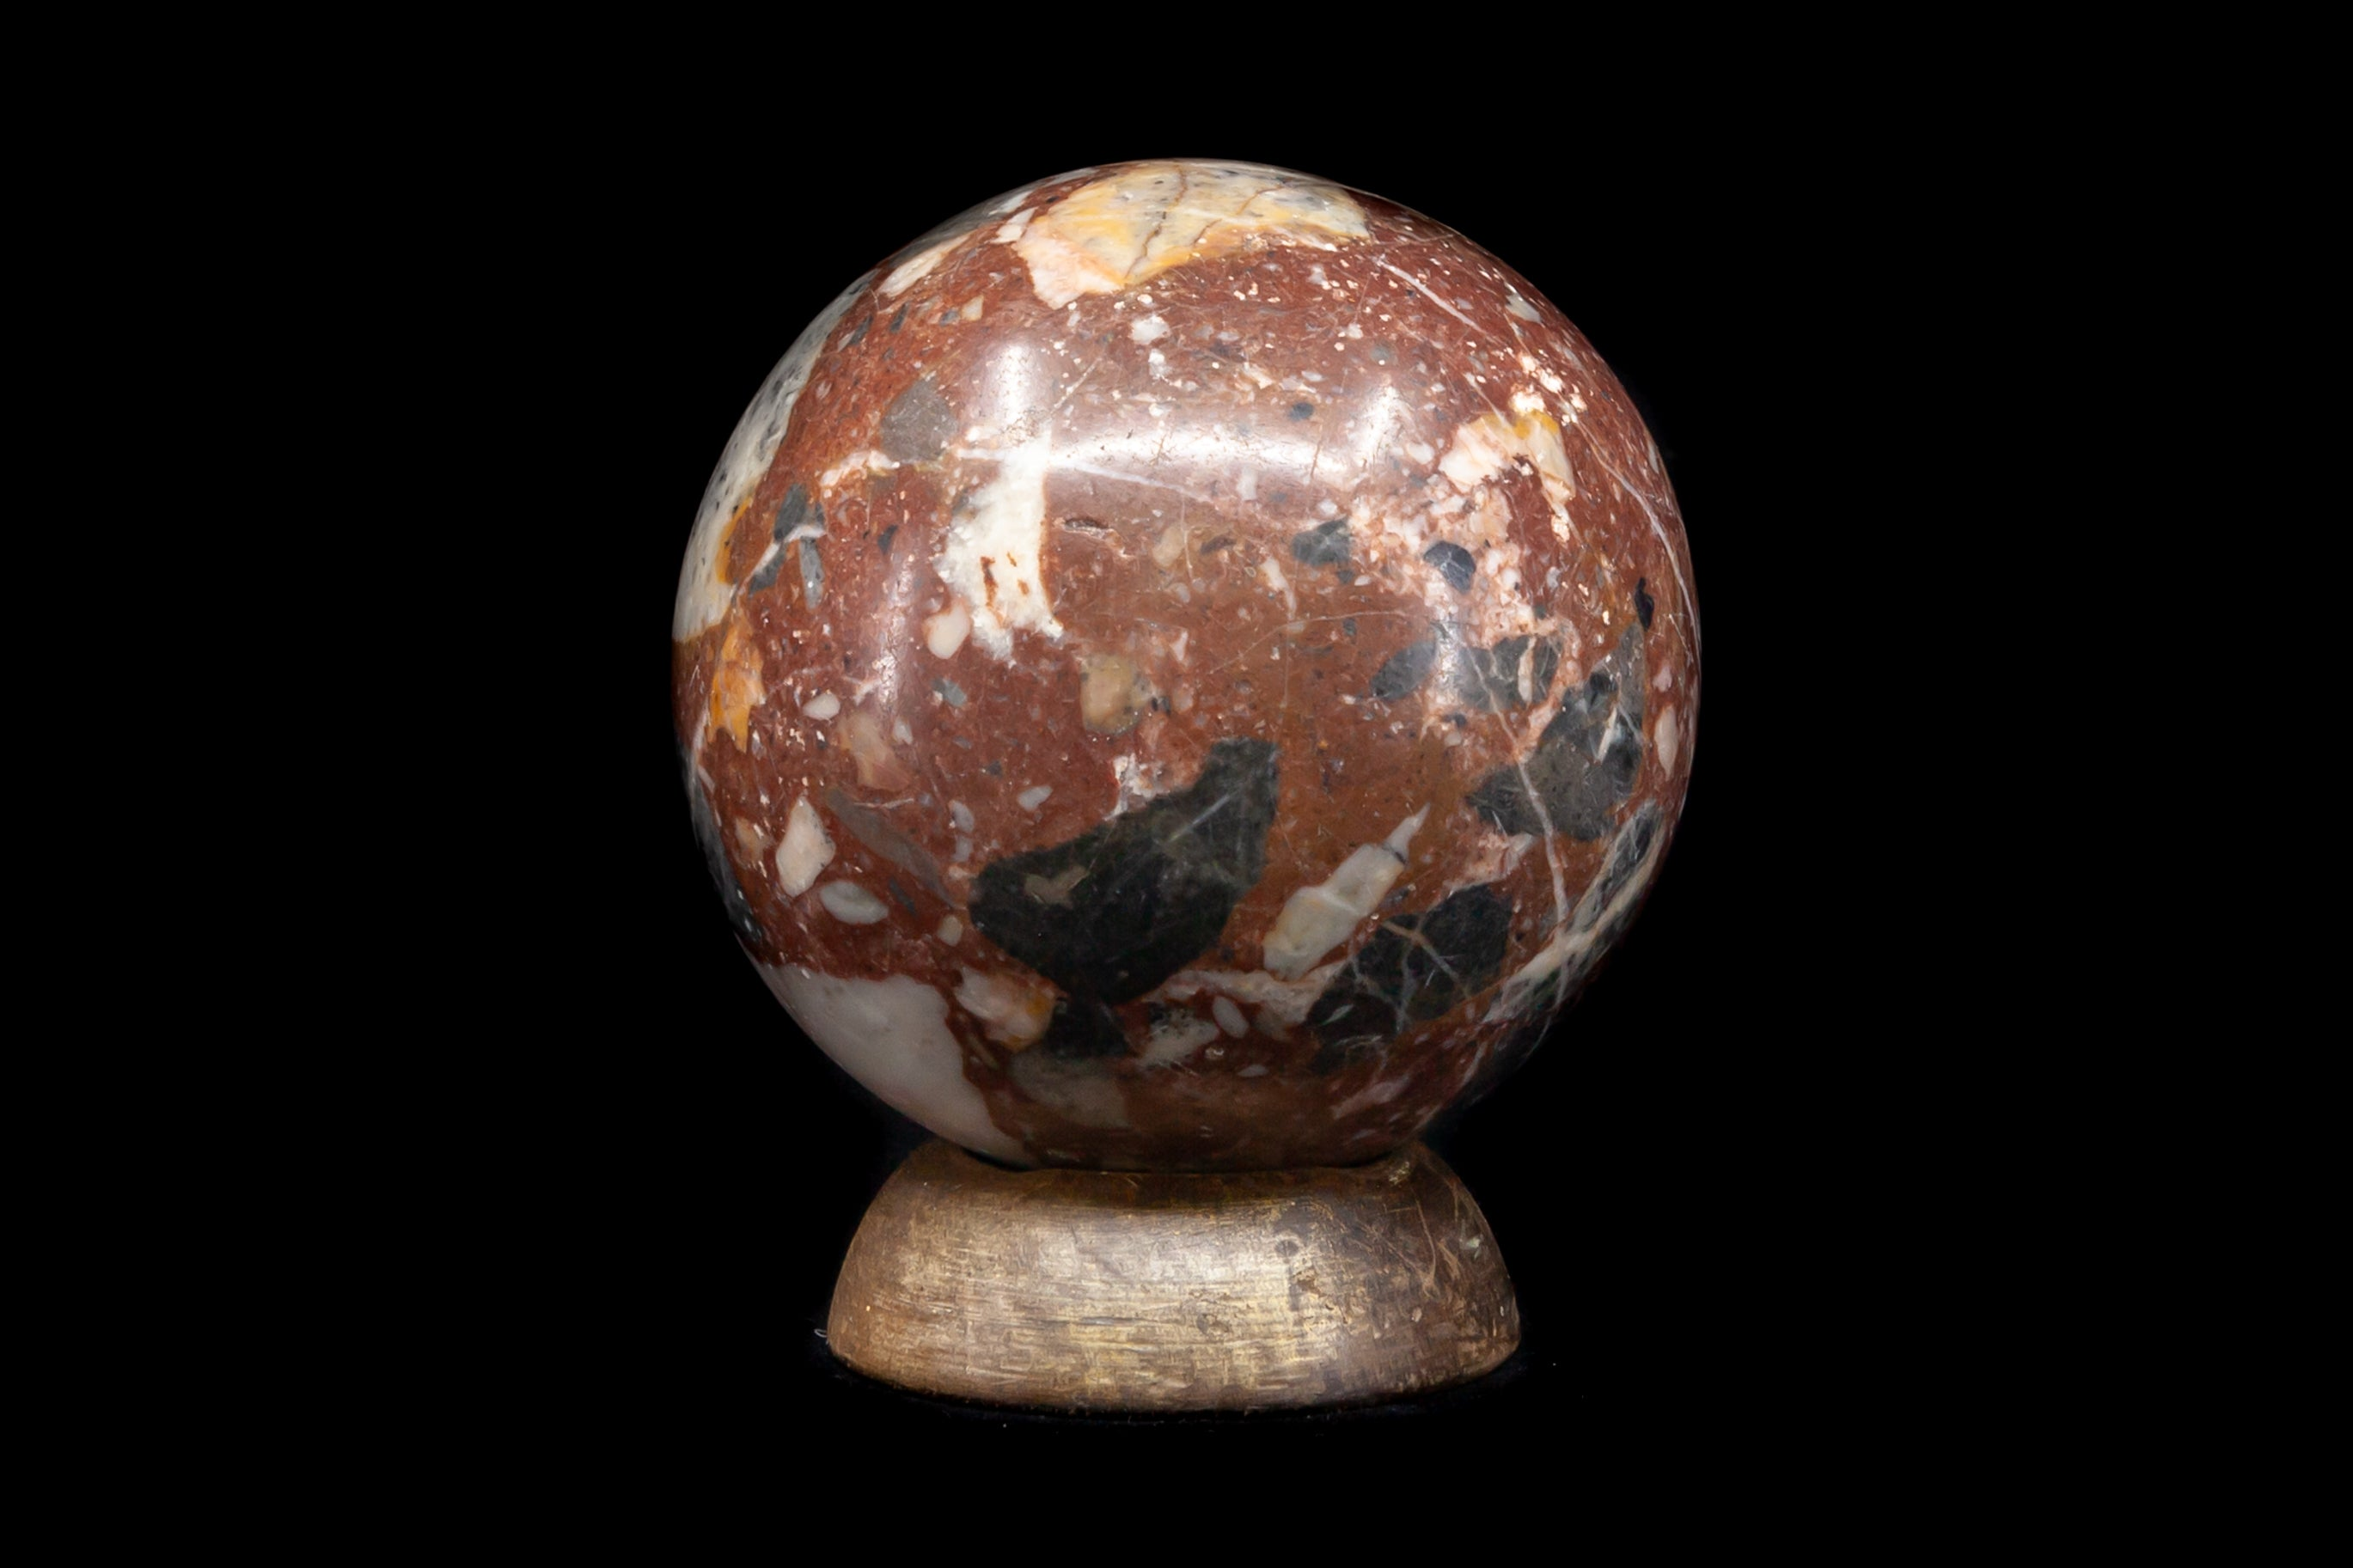 Victorian Marble Ball Paperweight on Wooden Stand